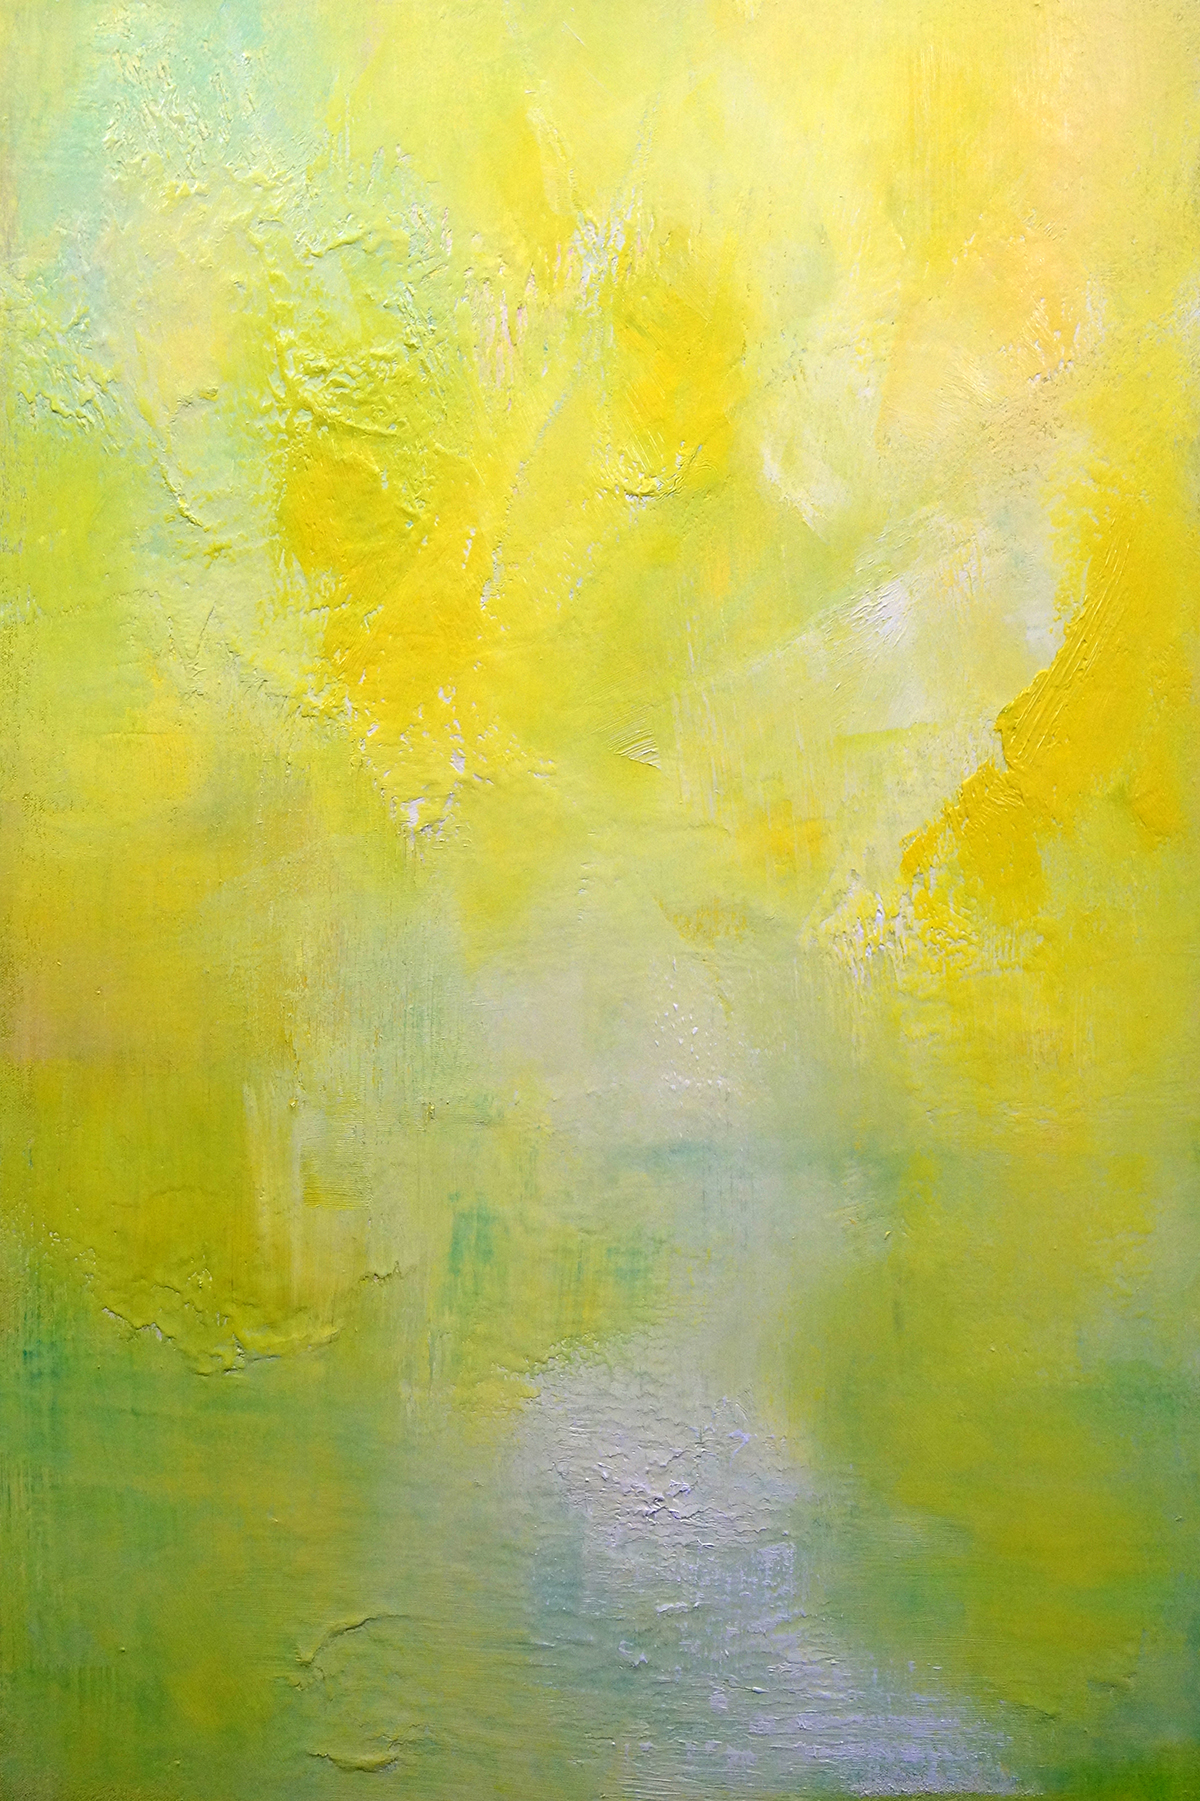 Landscape In Yellow - Oil on Canvas - 91.5cm x 61cm